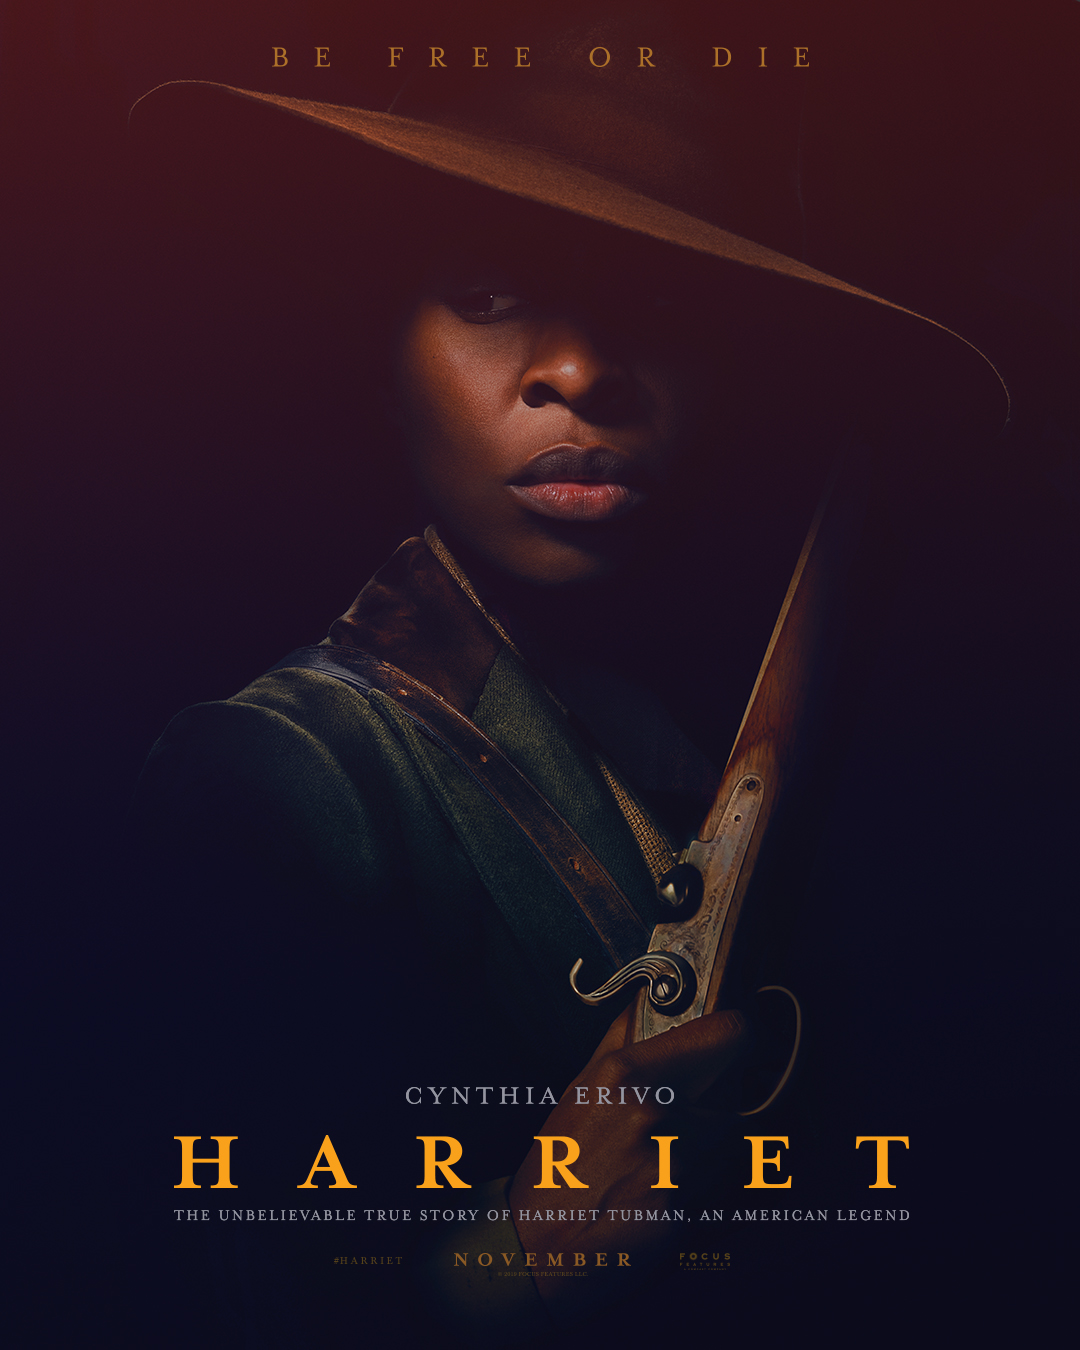 Cynthia Erivo is Harriet Tubman in First Full Trailer for 'Harriet' Movie